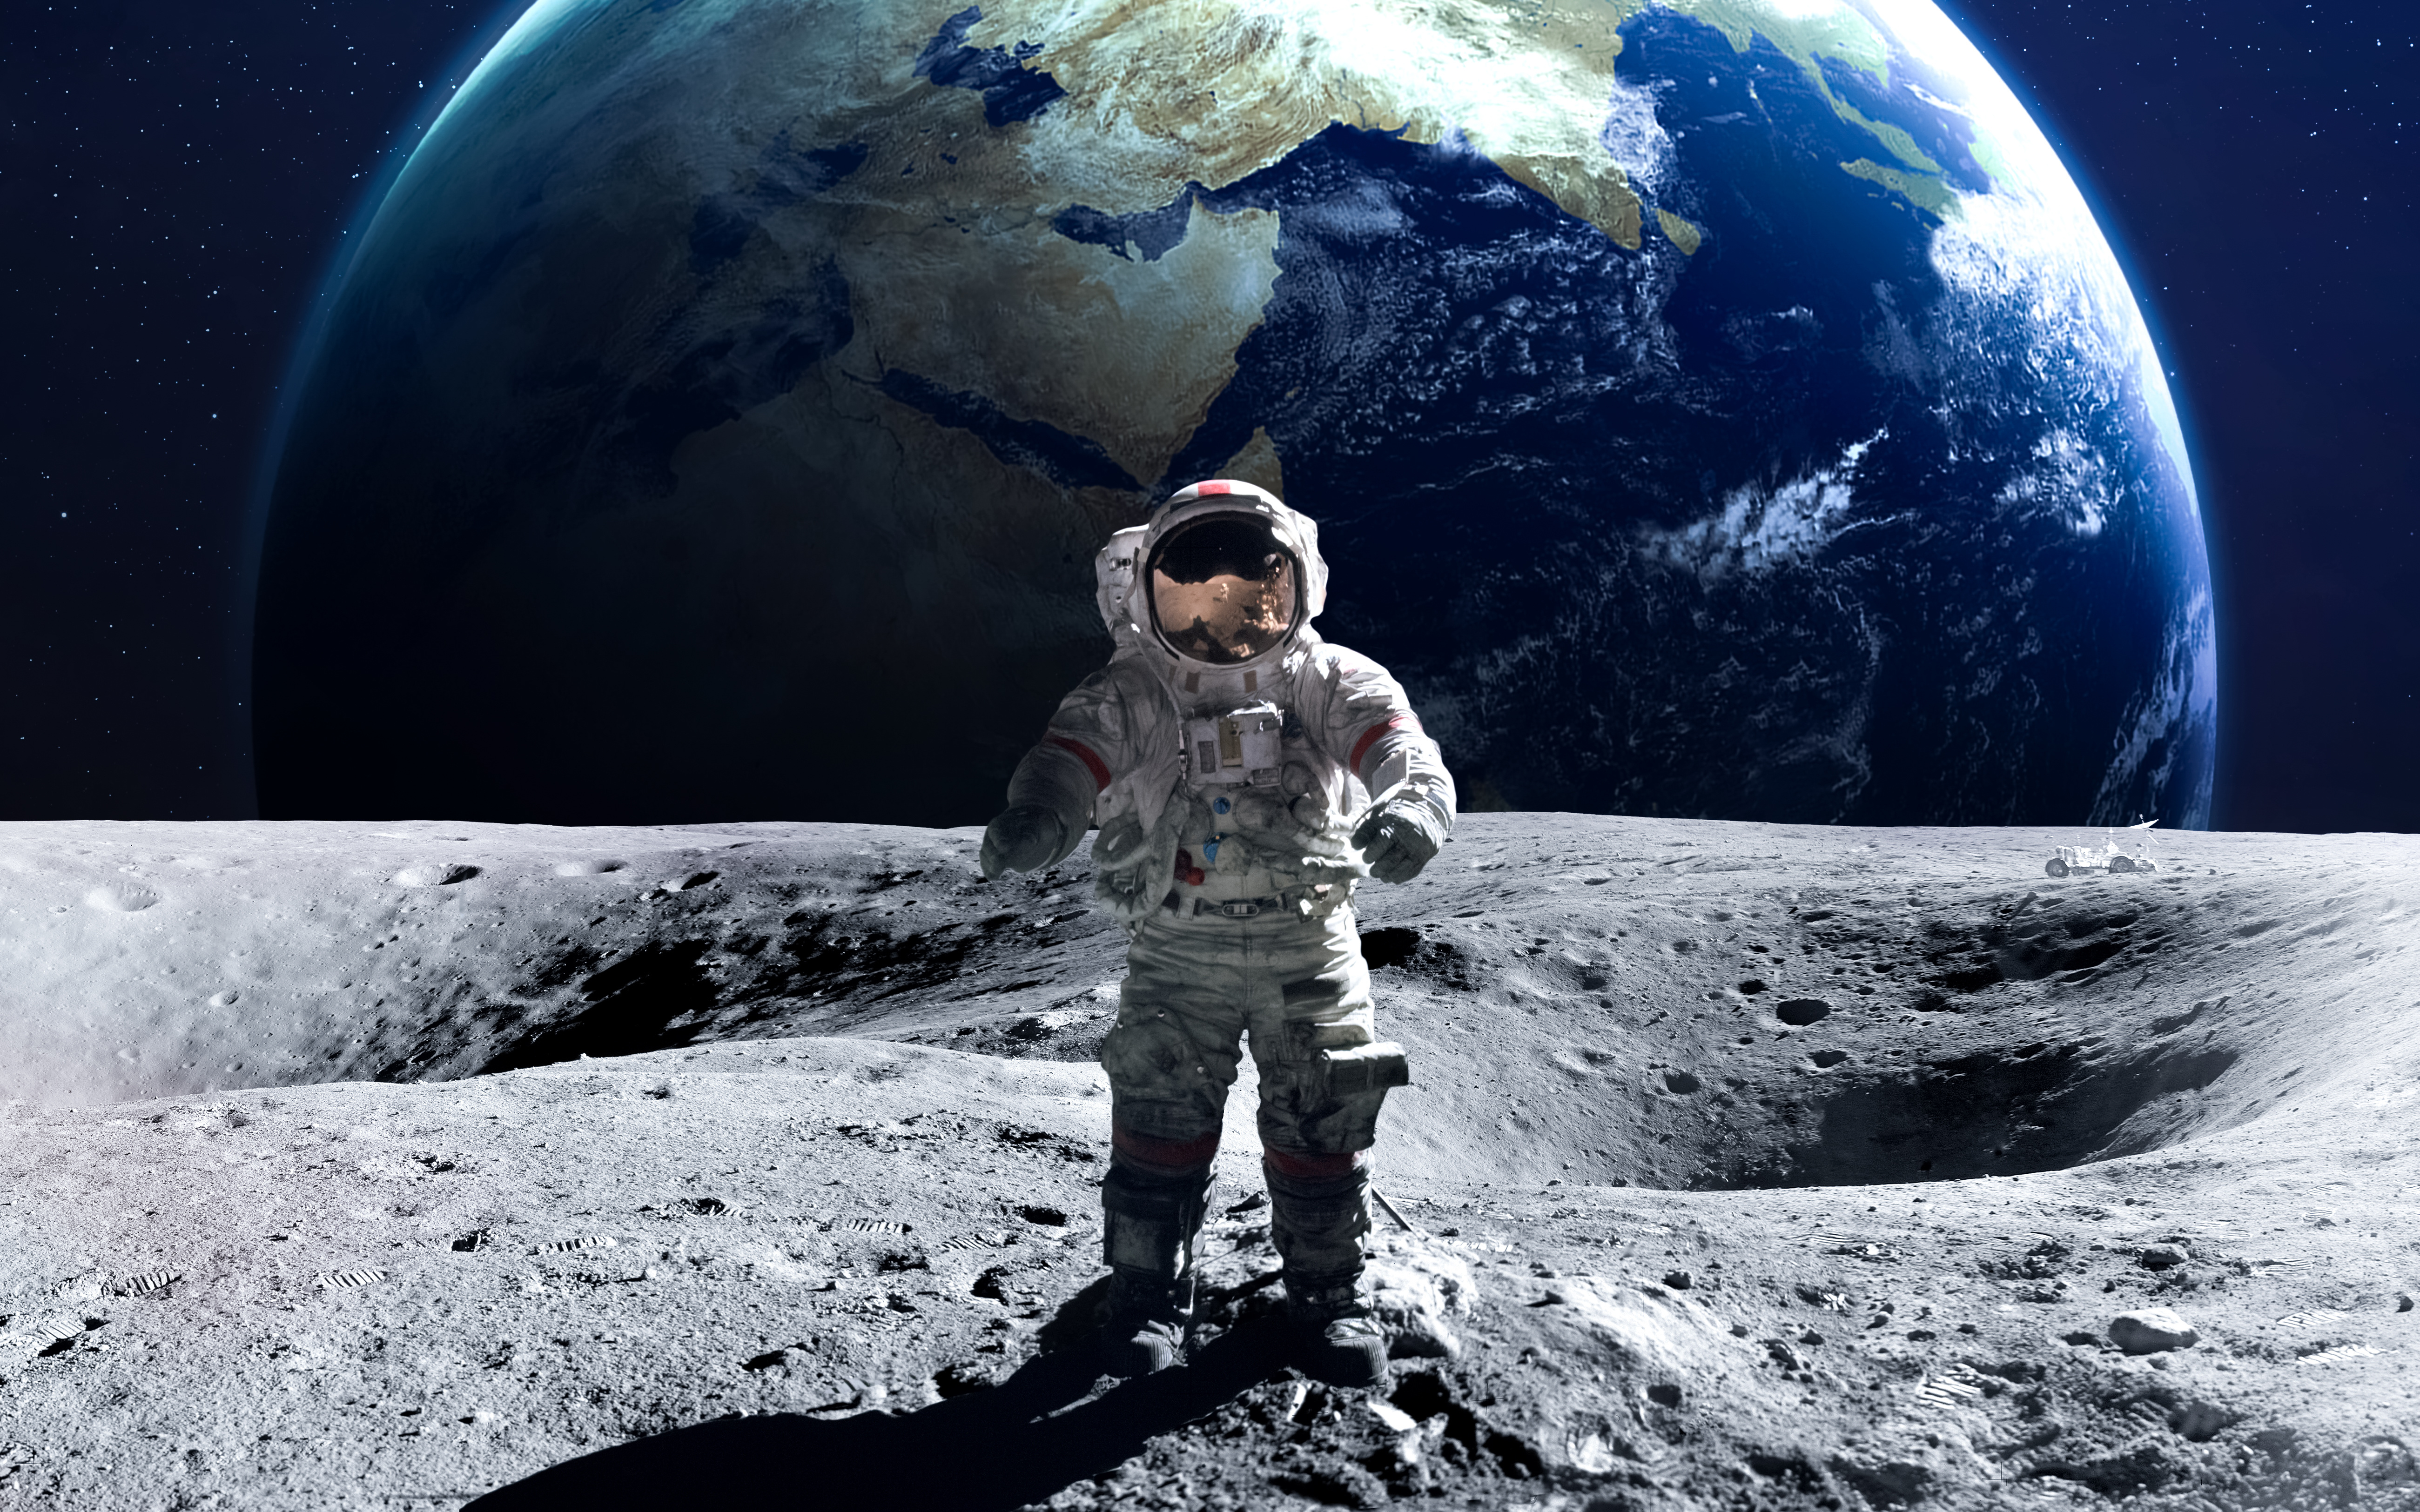 return to the moon space conquest space travels missions to moon and mars nasa esa astronaut technology european space agency